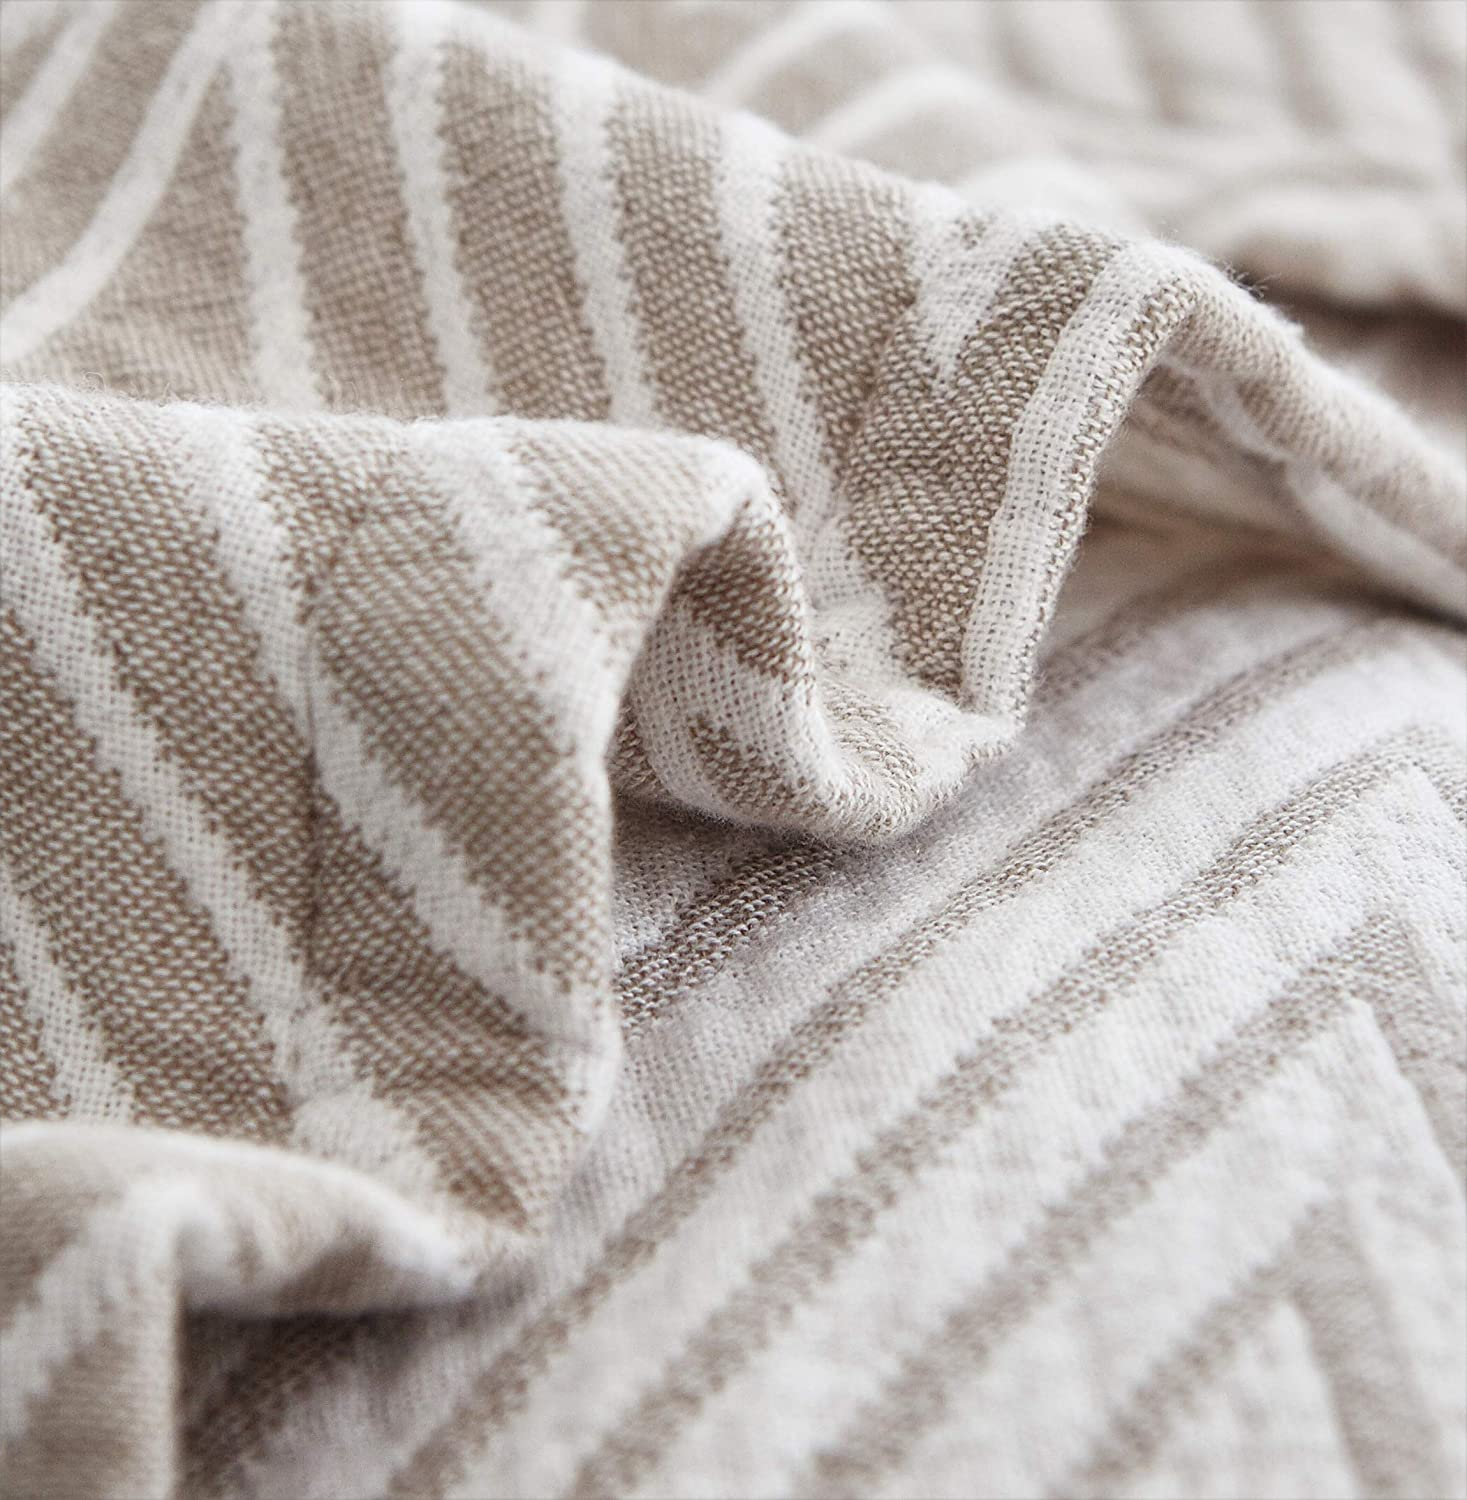 Check2 Gray, F//Q 78 X 90 MEJU Grey Checks Stripes Triange Muslin Lightweight Summer Blanket for Bed Sofa Couch 100/% Combed Cotton 3 Layer Soft Warm Quick Dry Throw Blanket Bed Coverlet Sheet